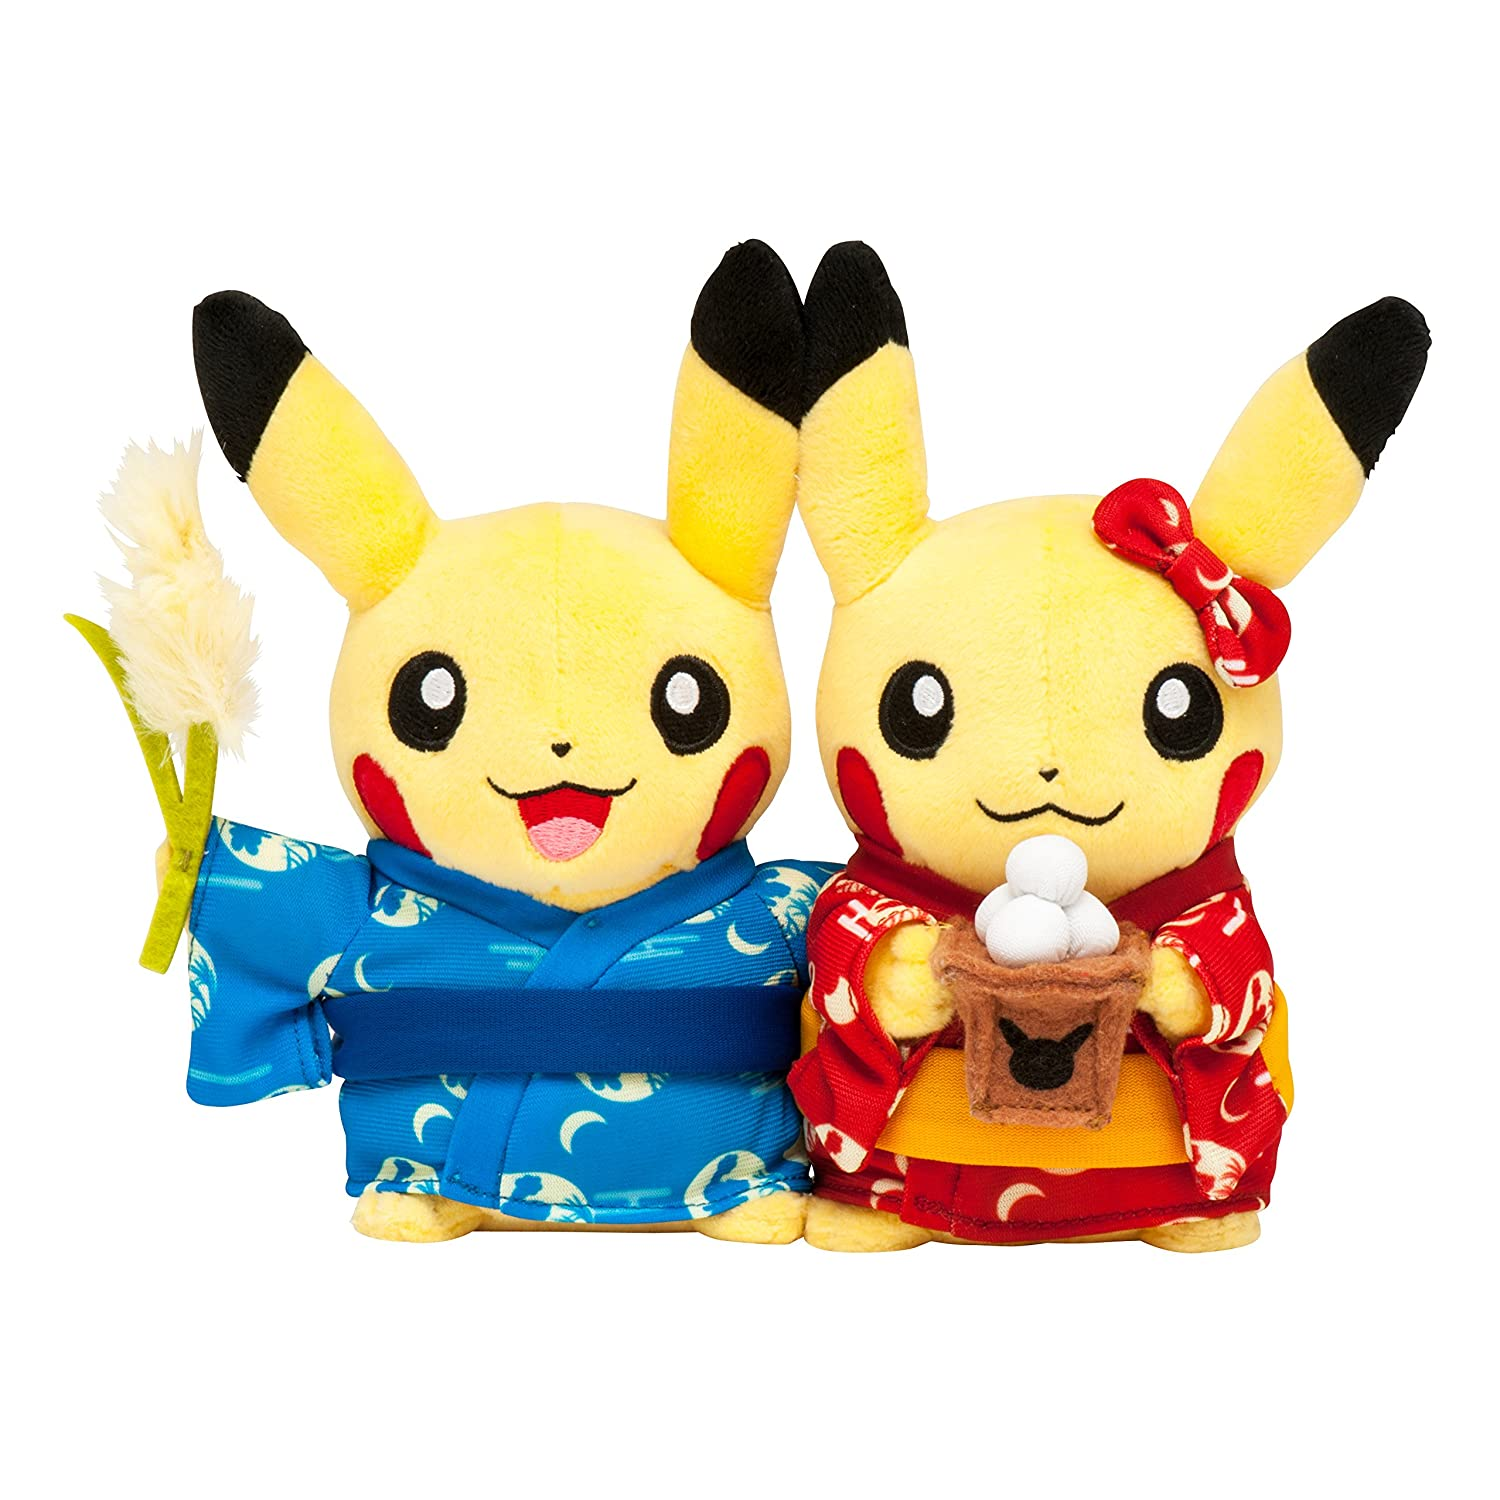 venta de ofertas Pokemon Pokemon Pokemon Center Original stuffed Monthly pair Pikachu 2016 September by Pokemon Center  ofreciendo 100%